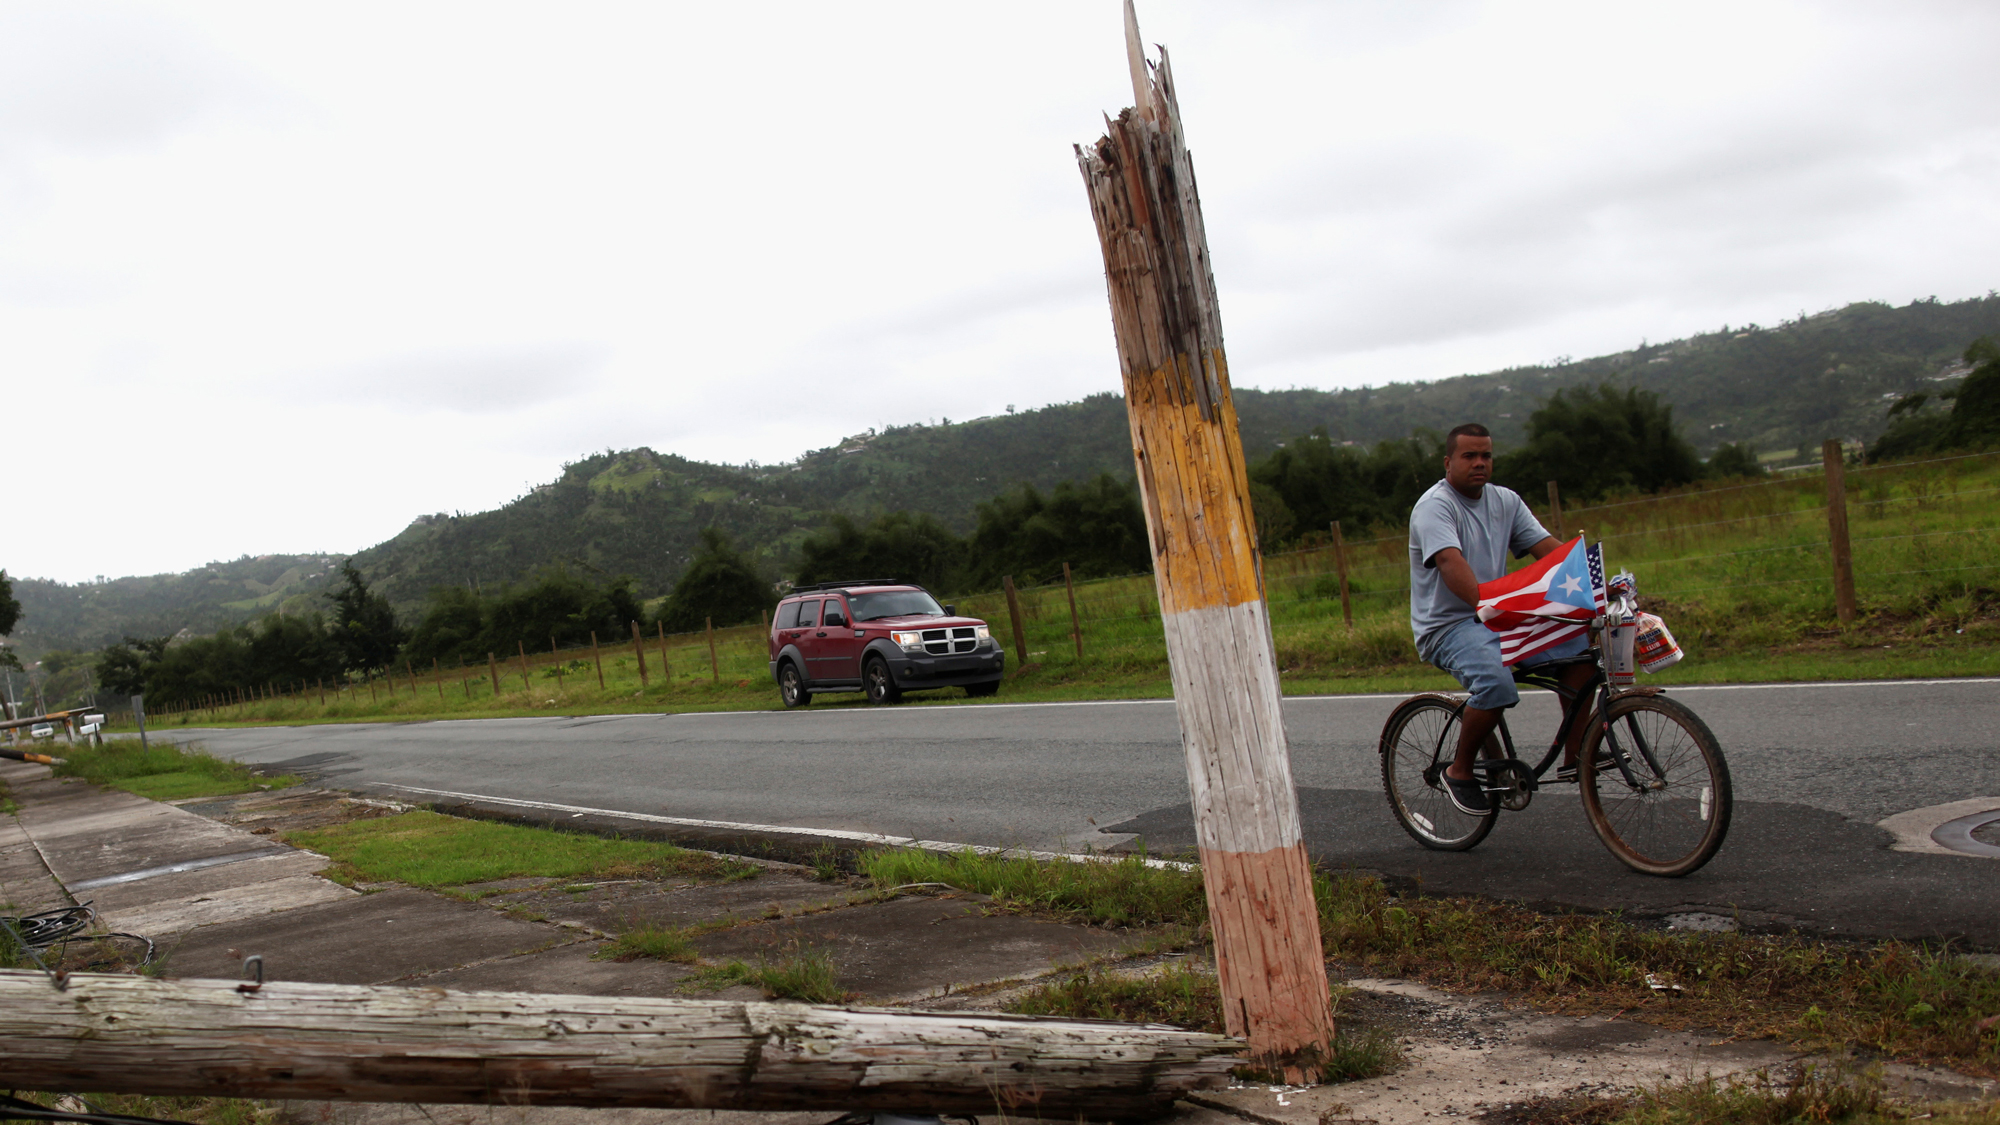 A man rides a bicycle past a collapsed utility pole after Hurricane Maria hit the island in September 2017.